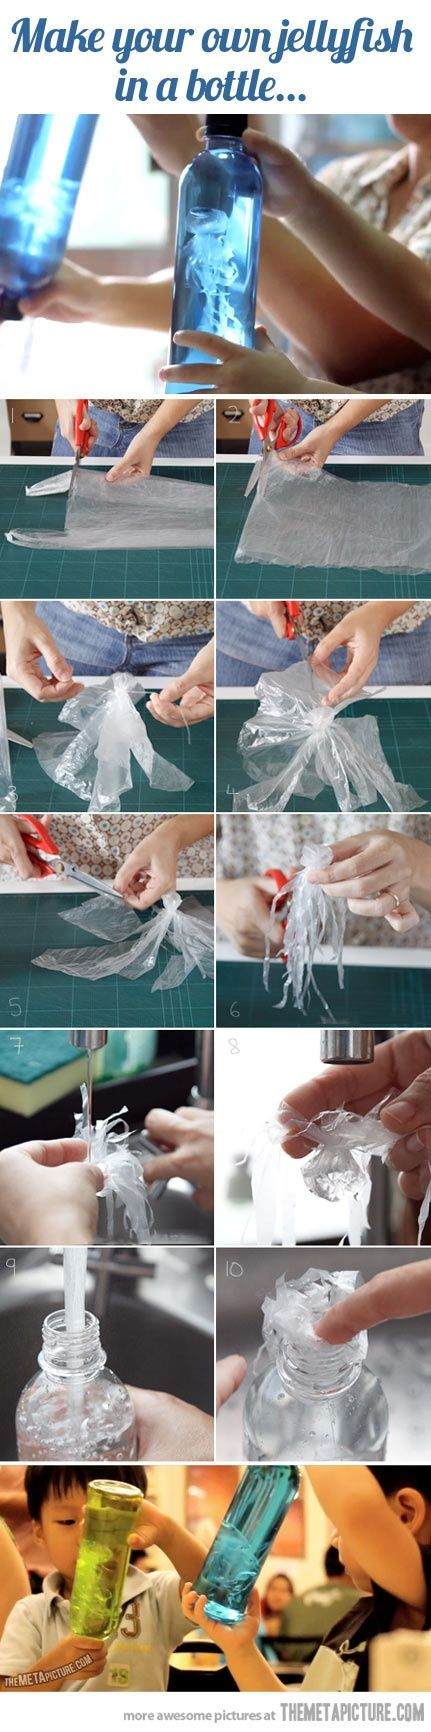 Jelly Fish in a bottle - party craft?